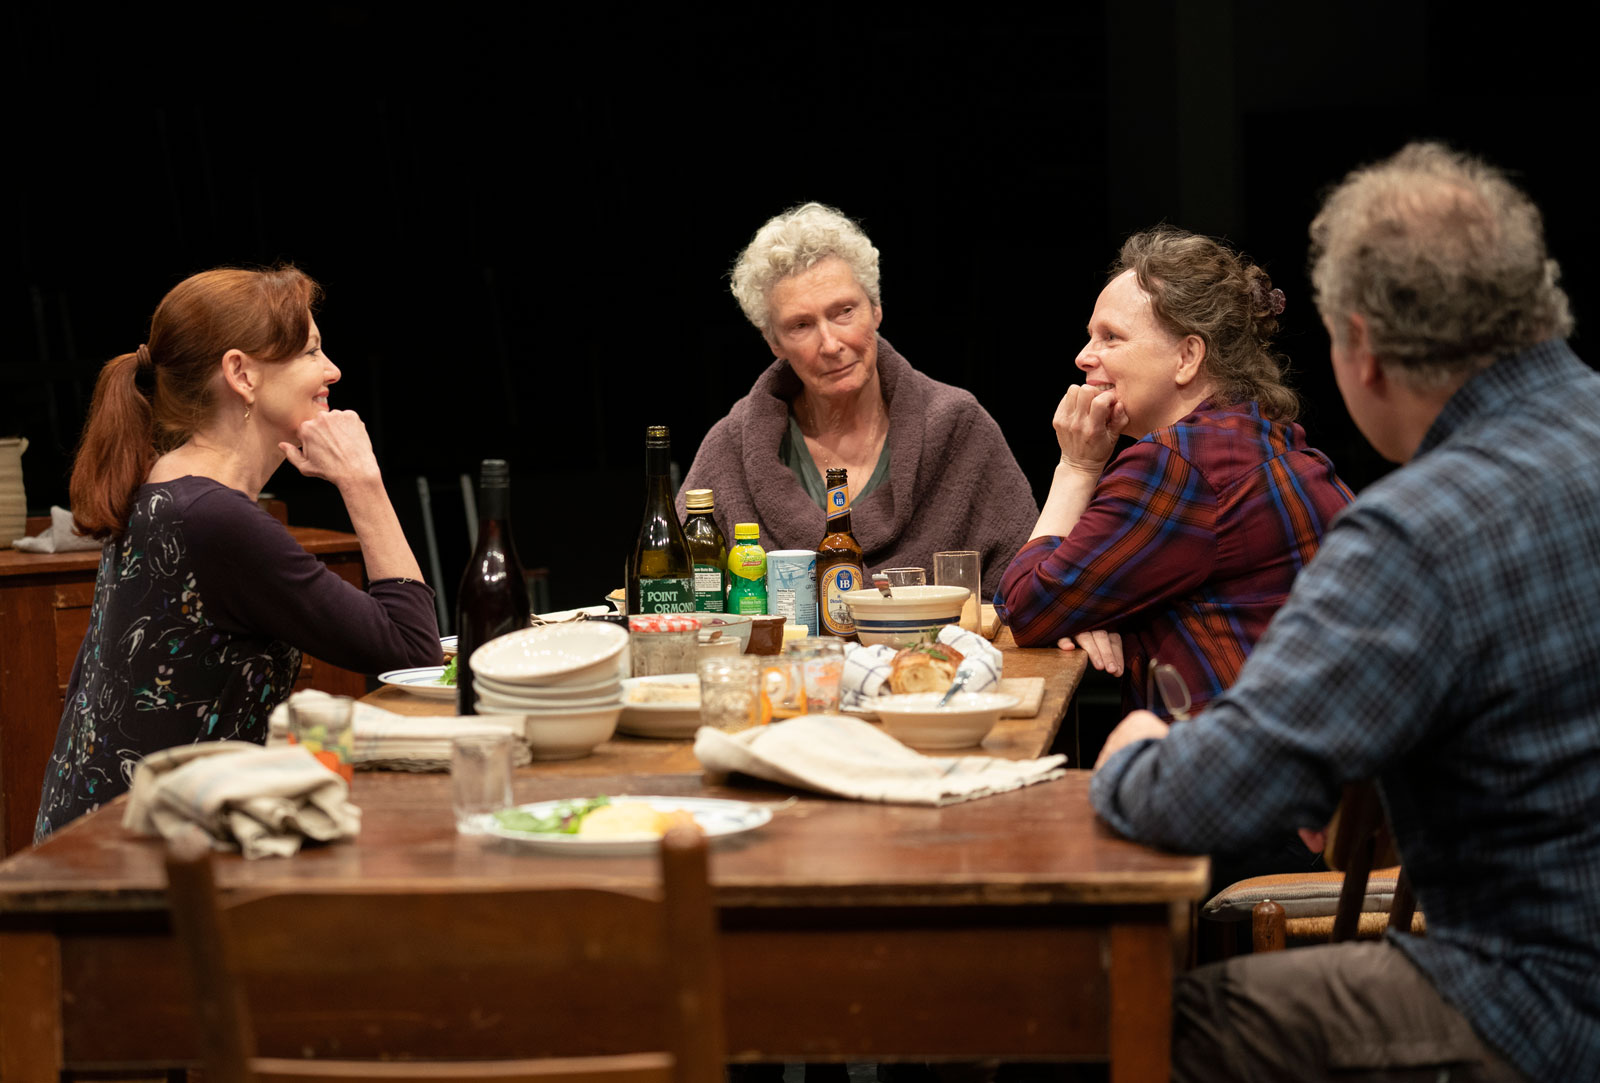 Haviland Morris, Brenda Wehle, Maryann Plunkett, and Jay O. Sanders in The Michaels, written and directed by Richard Nelson, at The Public Theater, October 27, 2019